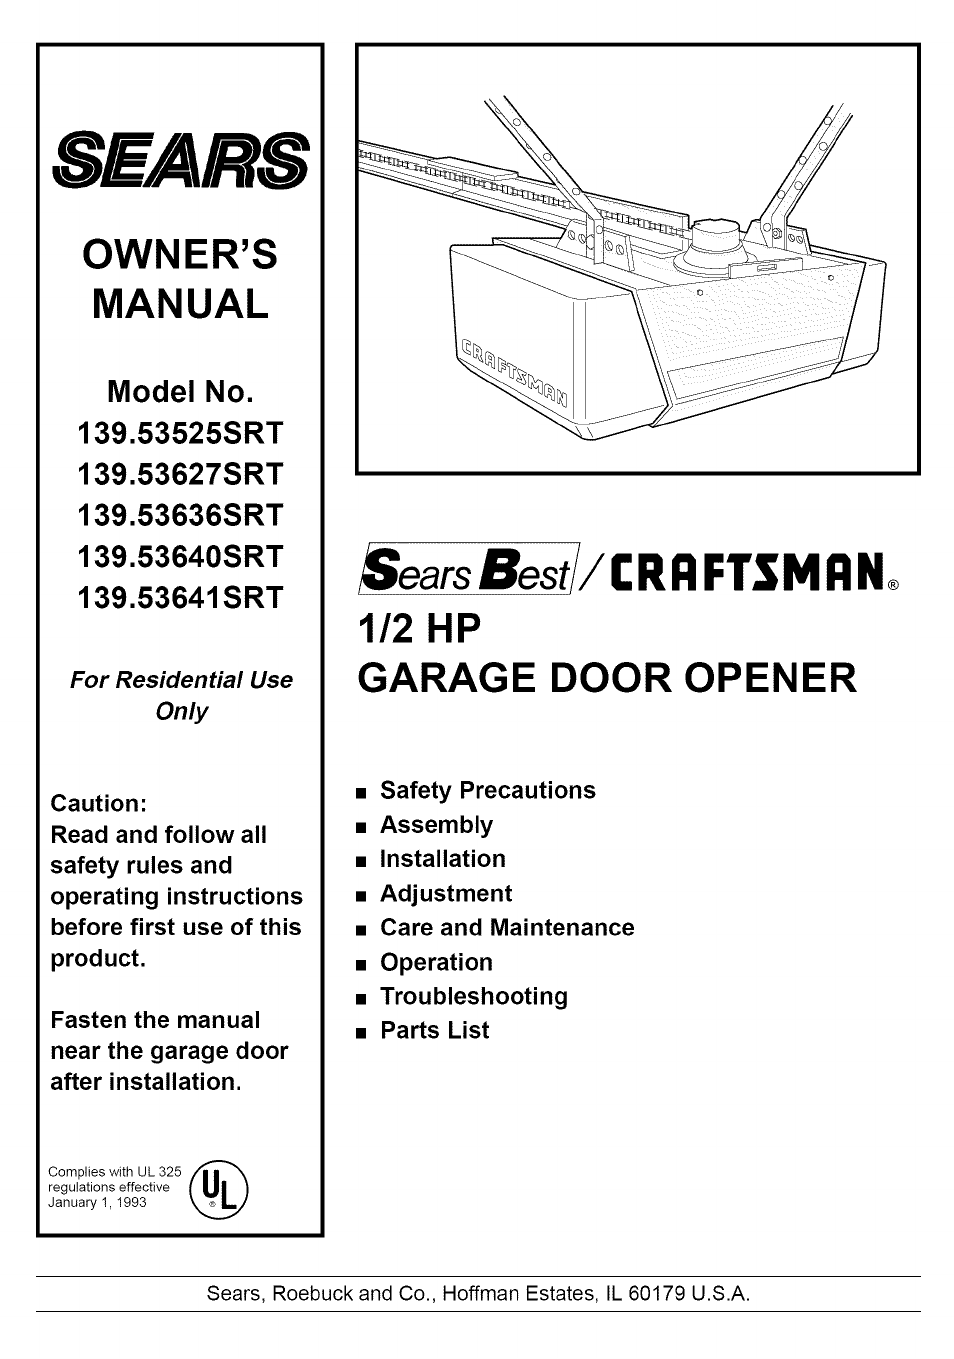 Sears Craftsman 139 53640srt User Manual 40 Pages Also